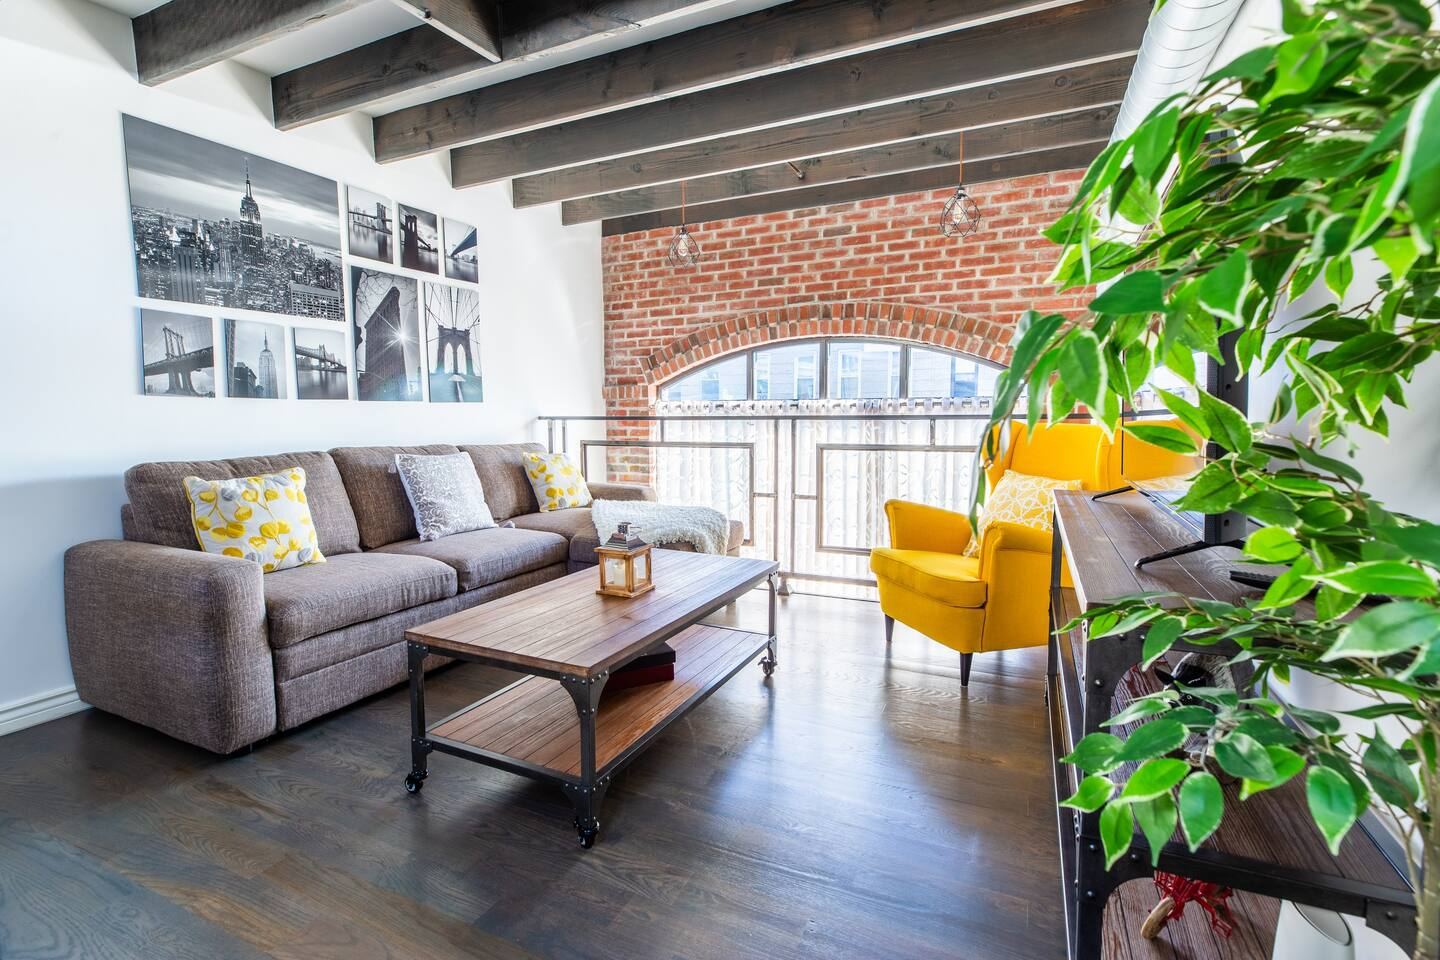 """(Living Room) Located on the duplex level of the loft. We offer a 50"""" Smart TV with access to local channels and apps like Netflix, HBO, Prime and more. Queen Size Sofa Bed with extra blankets and pillows. Beautiful window view of the neighborhood."""